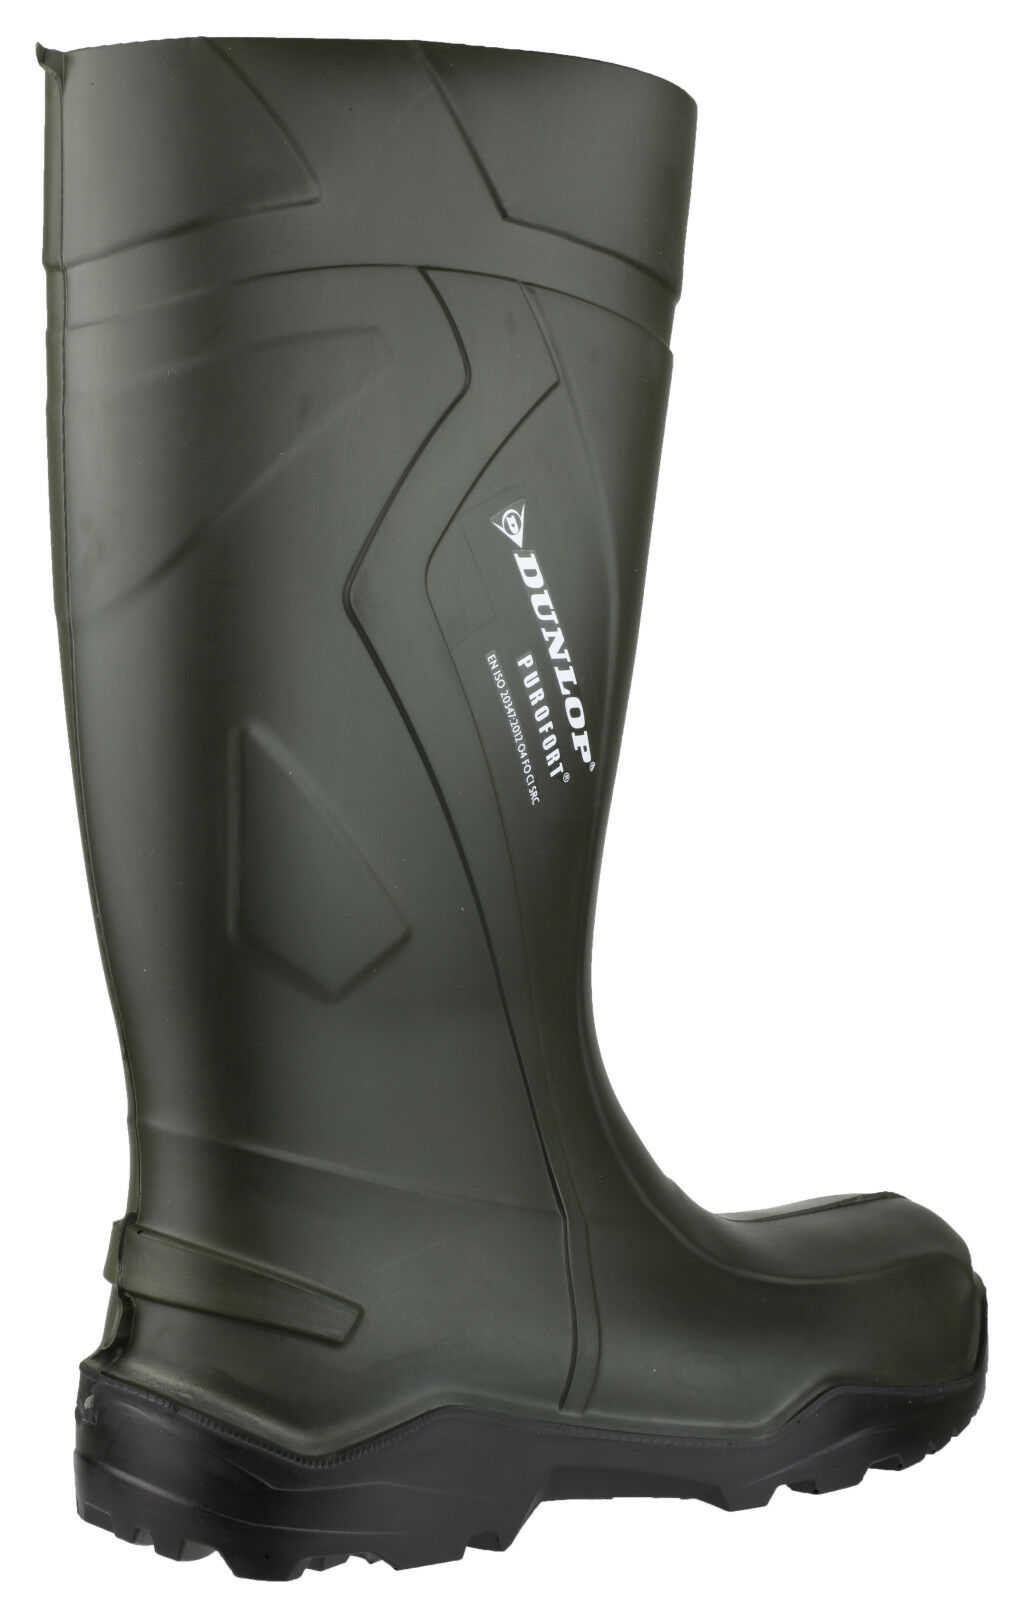 Dunlop Purofort + + + Pull imperméable à l'eau le  s industriel travail Wellingtons UK3-14 | Durable En Usage